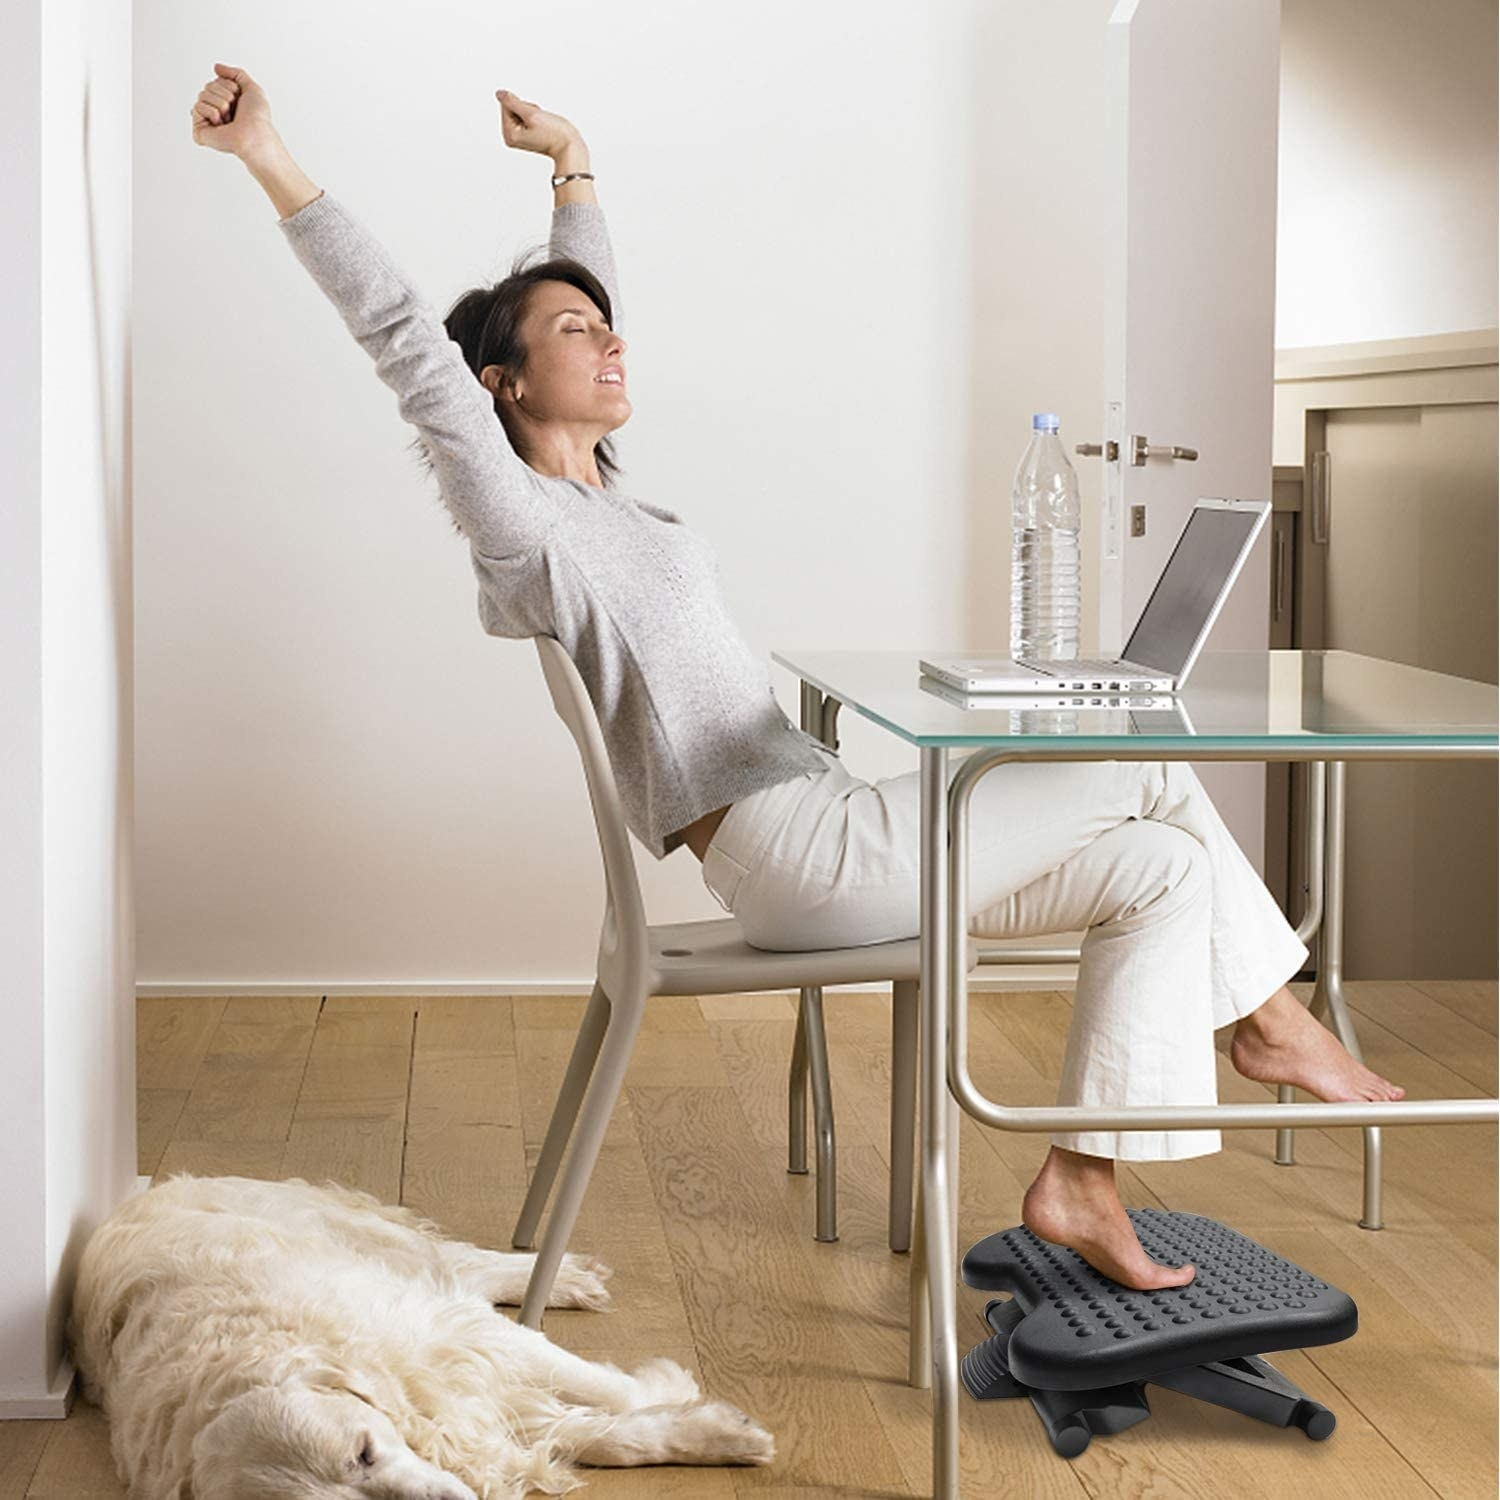 A person sitting on the desk with a small footrest underneath